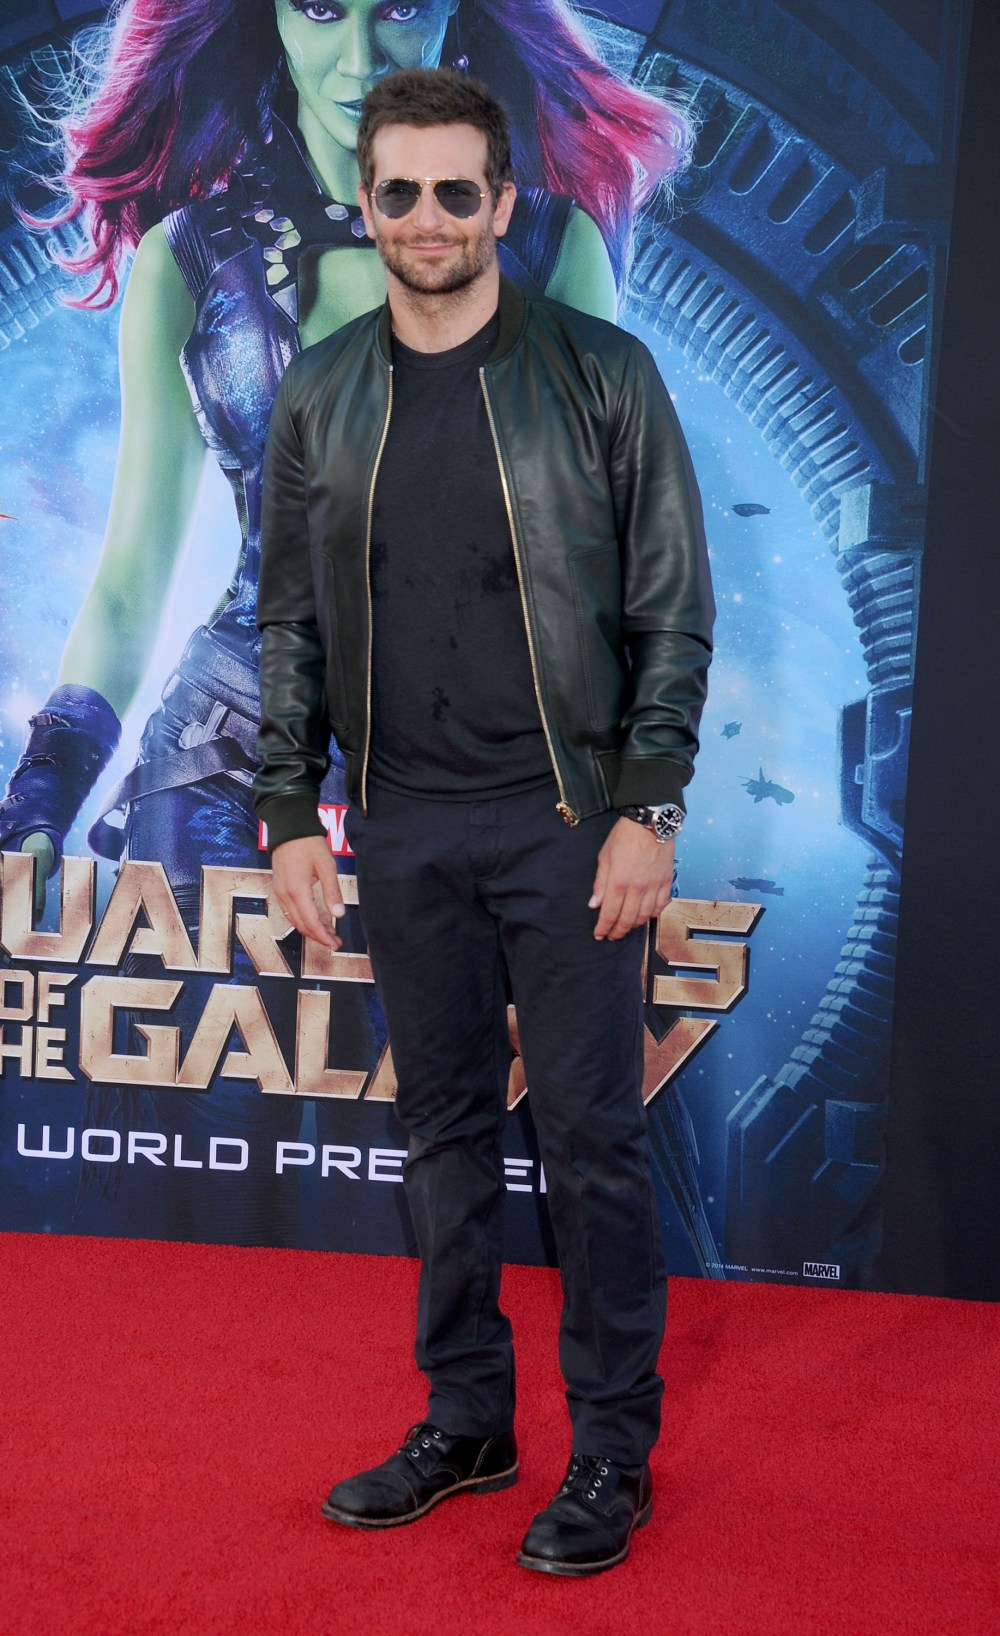 Bradley-Cooper-at-Guardians-of-the-Galaxy-premiere-www.scifiempire.net